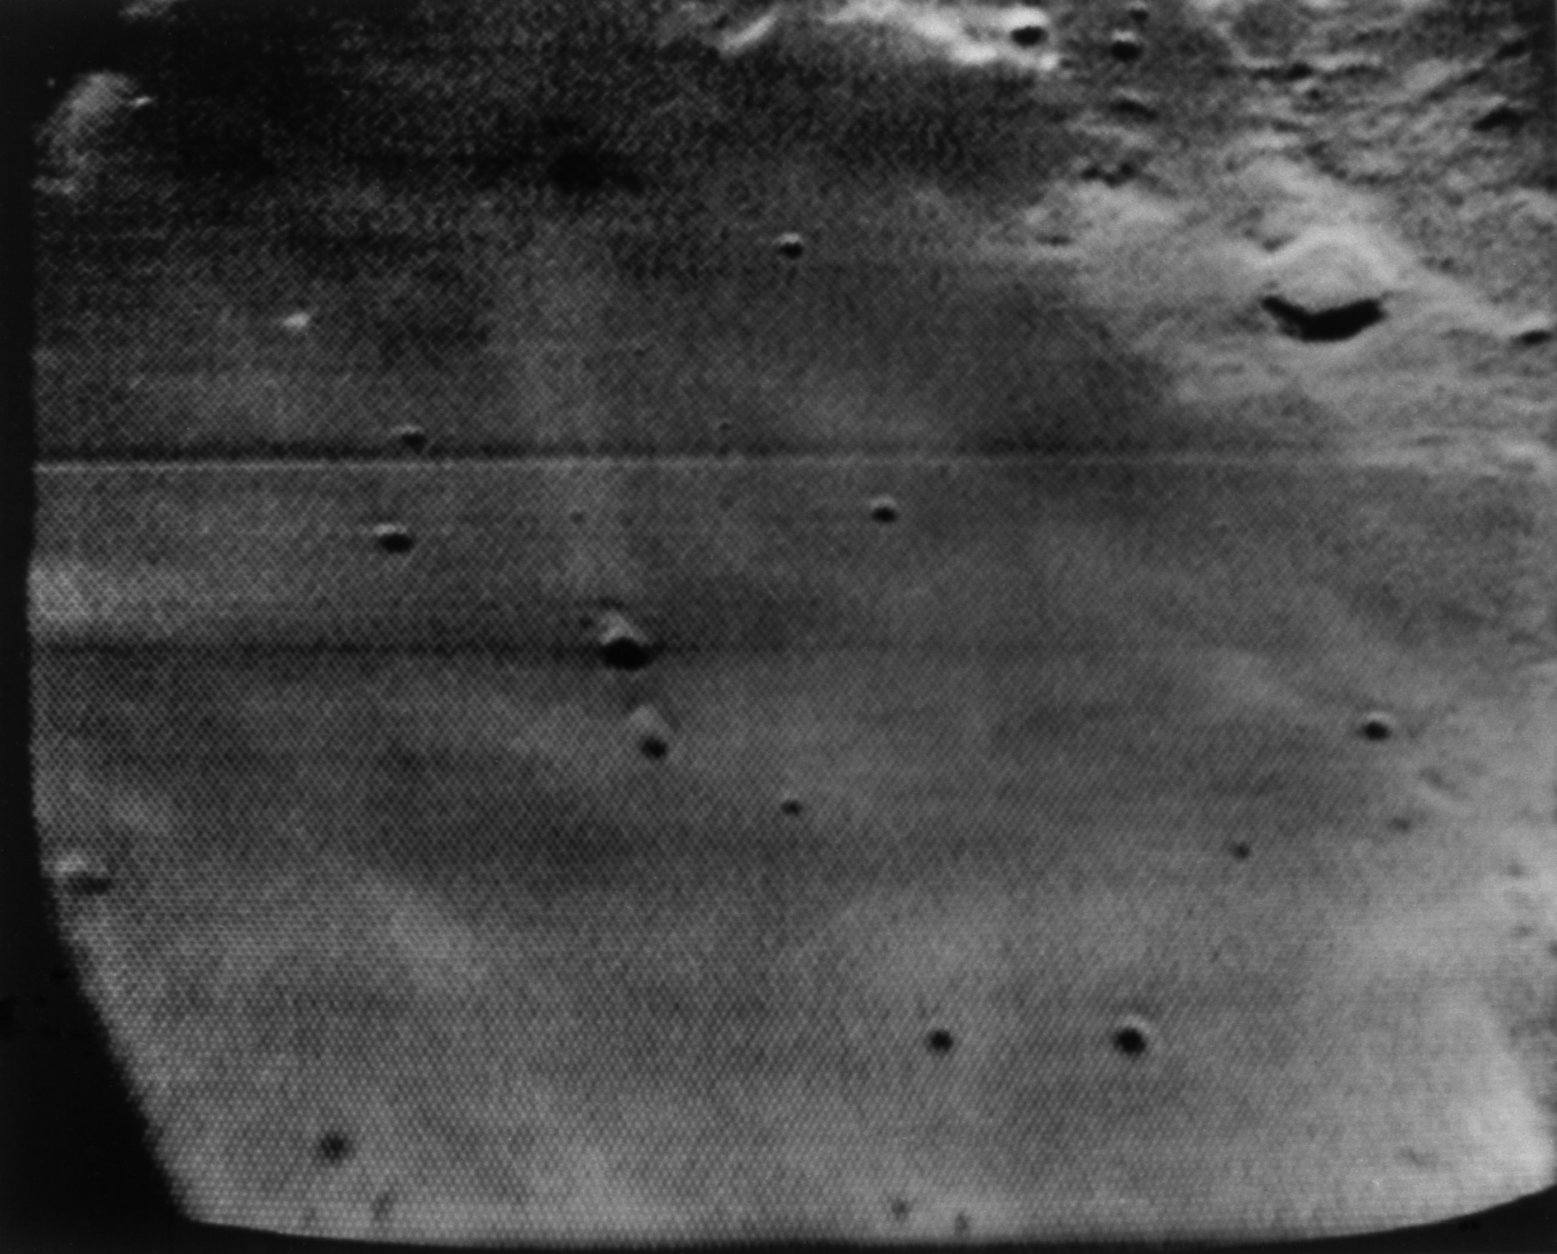 This is the Apollo 11 primary landing site as seen from the hatch window of the spacecraft and telecast back to earth on July 19, 1969. (AP Photo/NASA)